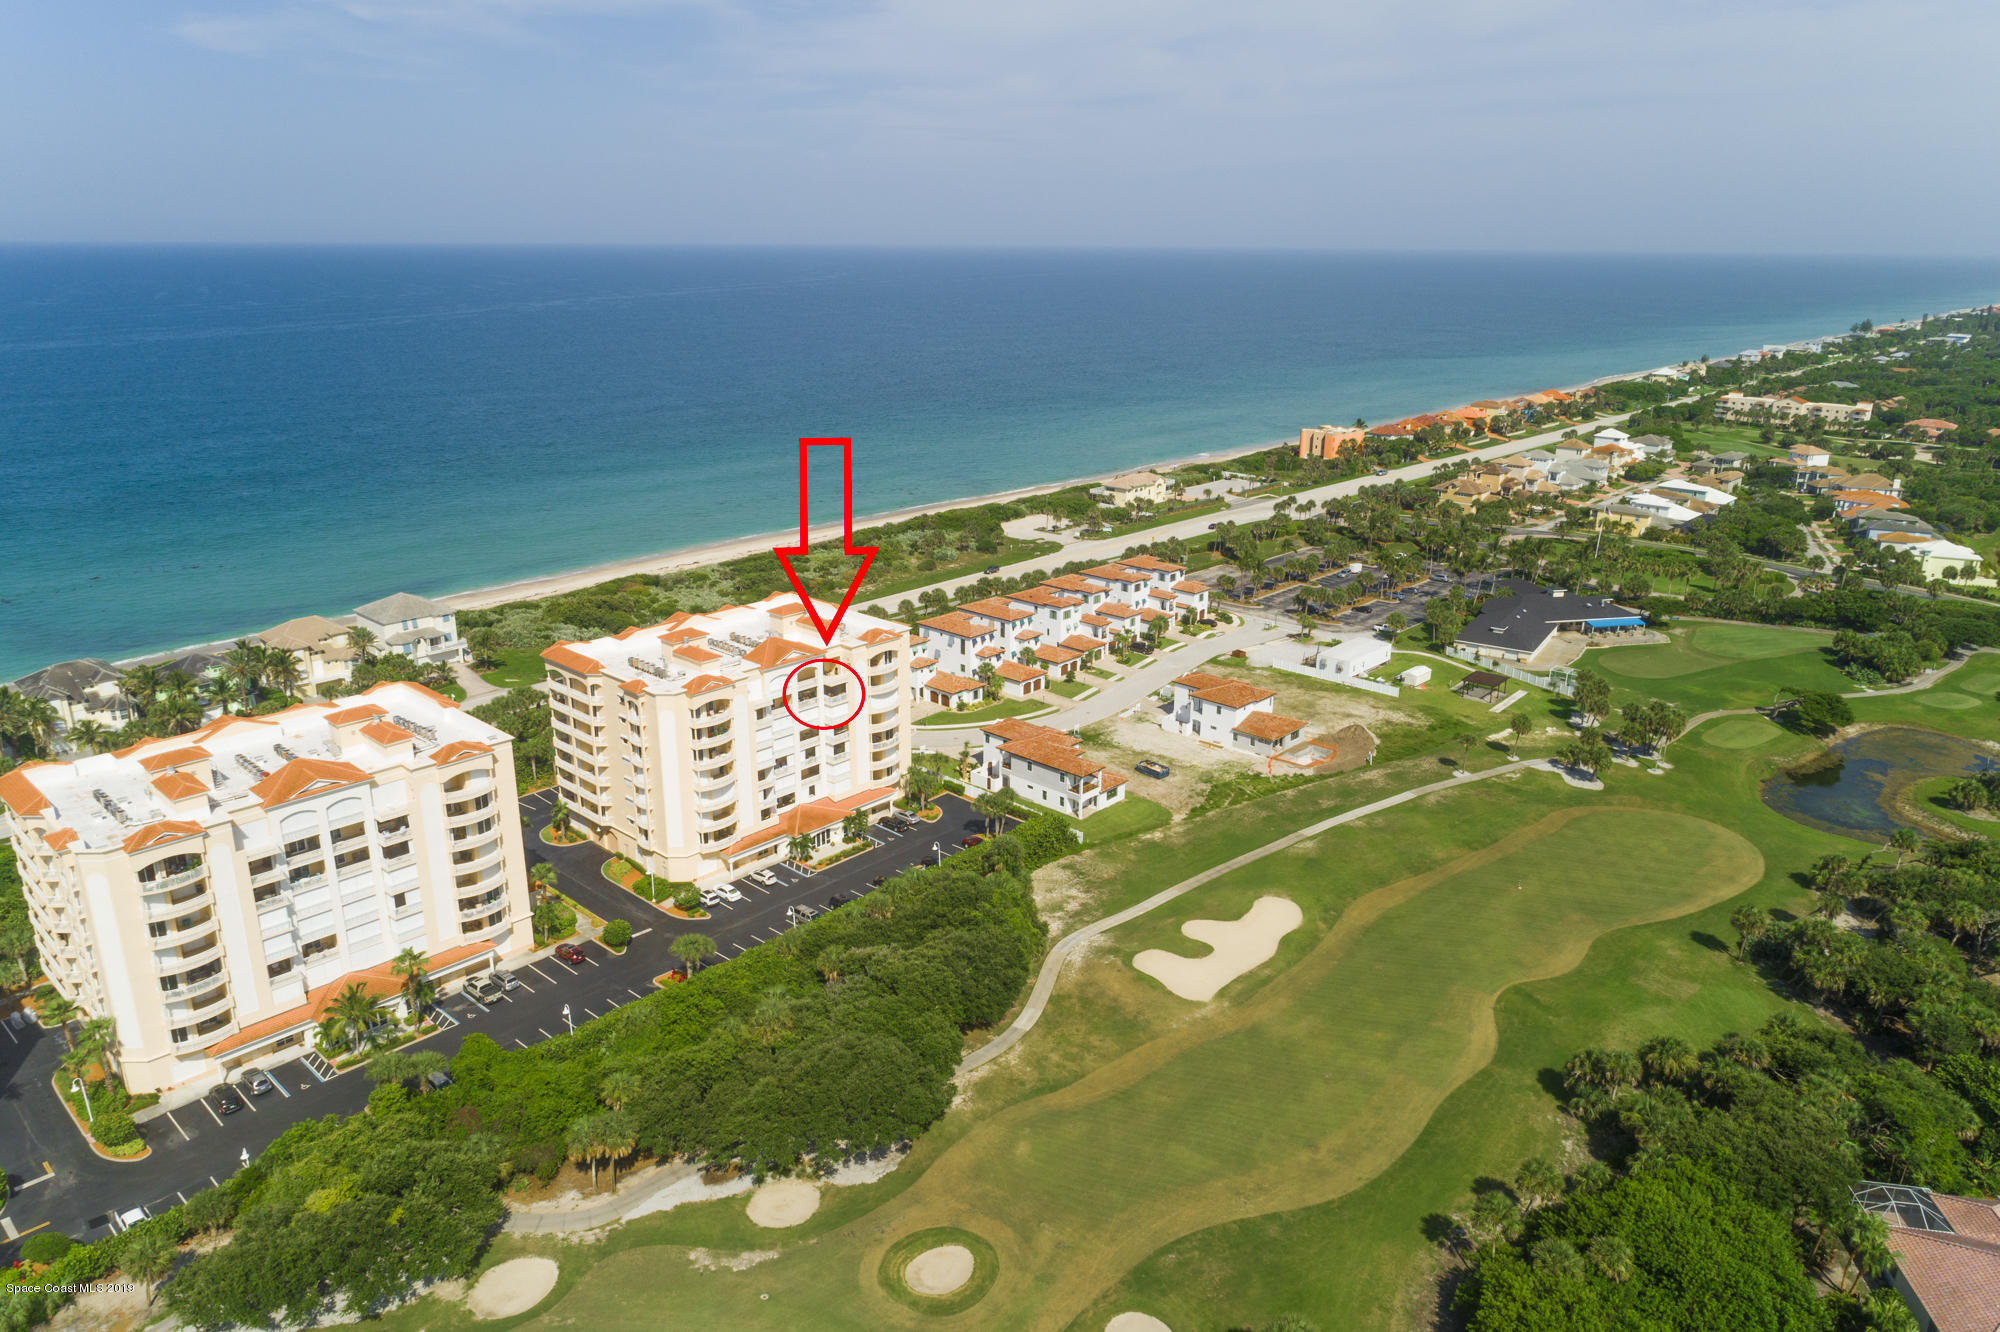 Single Family Homes for Sale at 110 Warsteiner Melbourne Beach, Florida 32951 United States